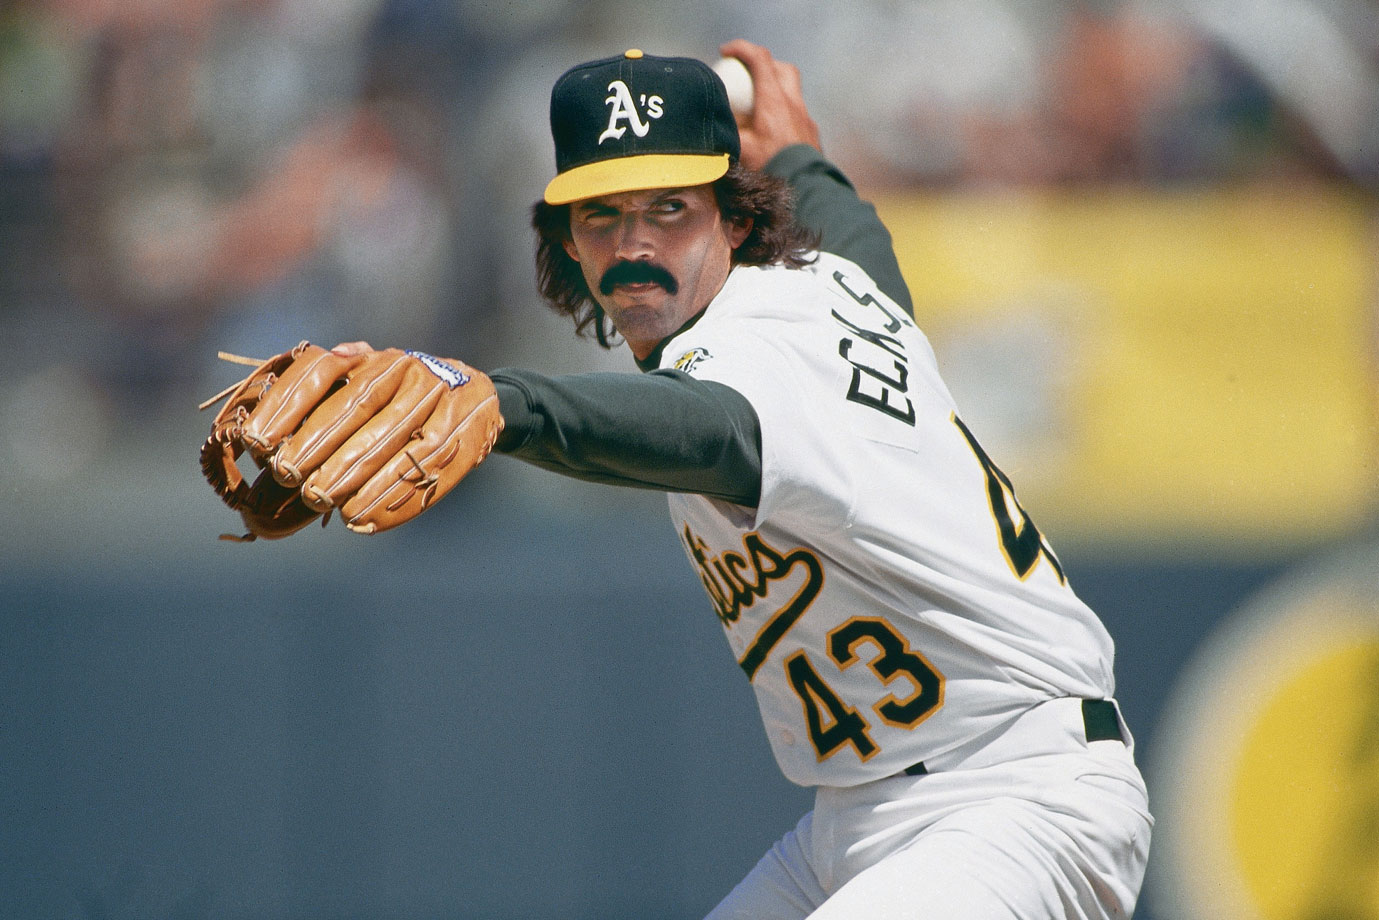 Dennis Eckersley won 20 games as a starter for the Red Sox in 1978, but a 1987 trade to the Athletics jump-started his career as a reliever. From 1988-1993, he saved no fewer than 33 games and led the league in 1988 (45) and 1992 (51). The six-time All-Star won the MVP and Cy Young awards in 1992.